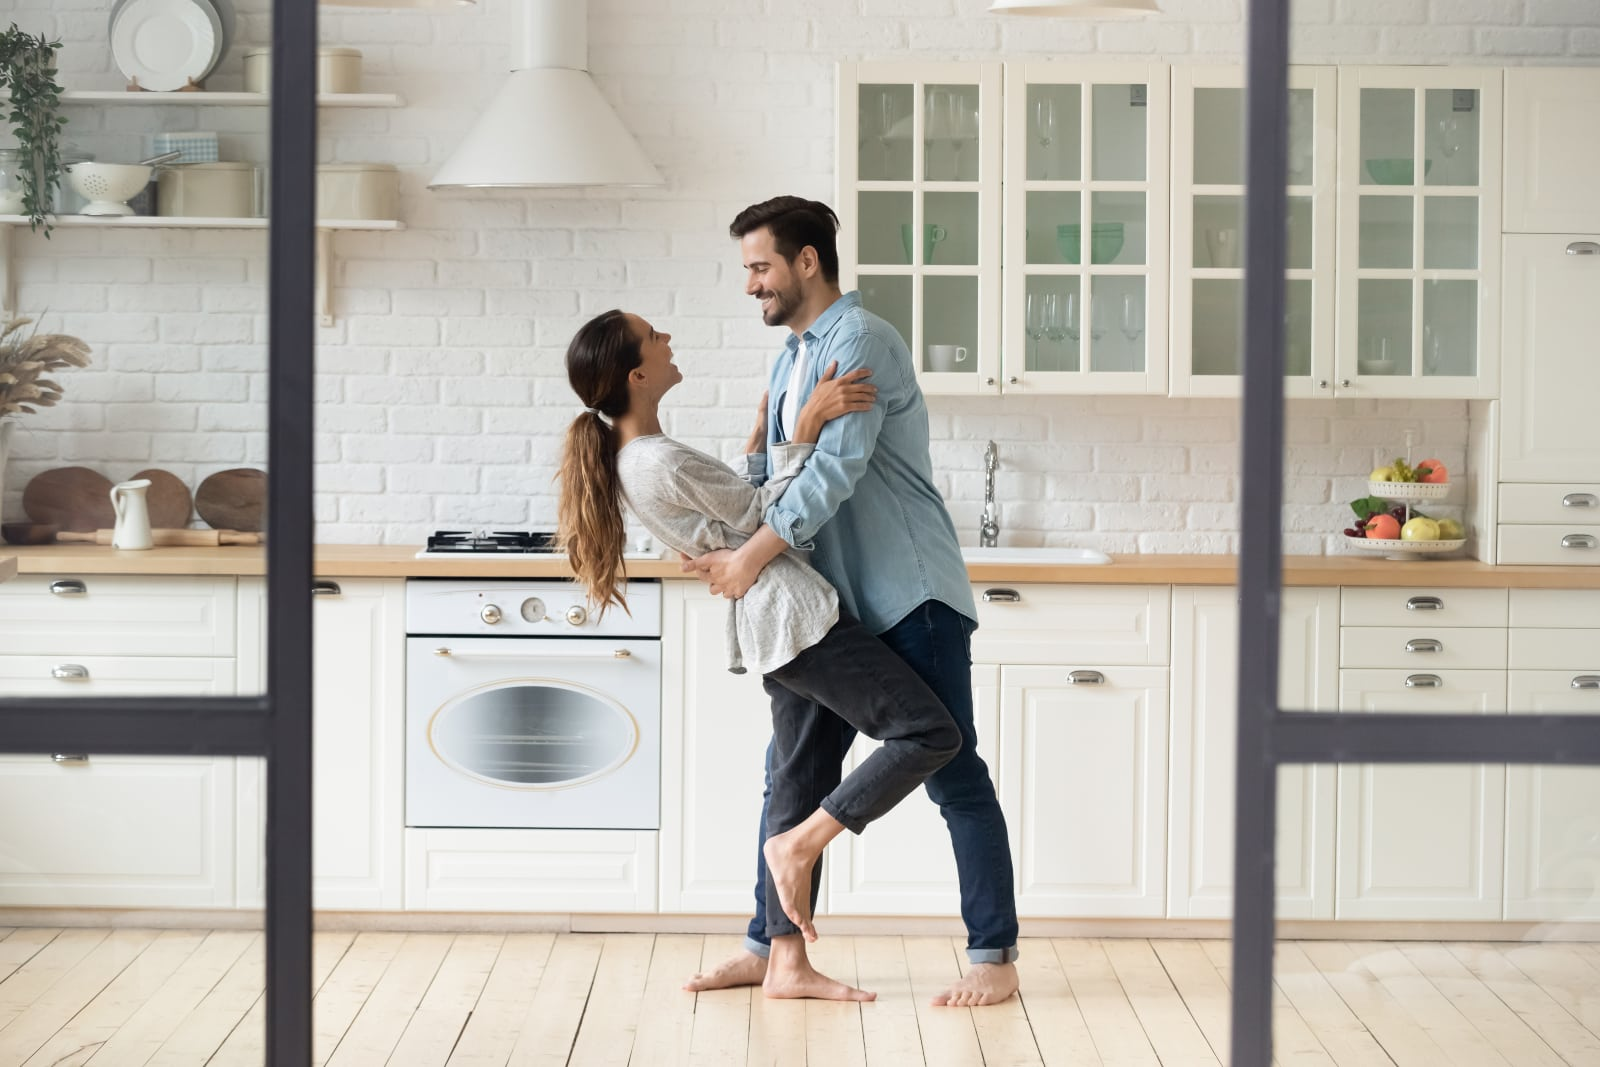 couple dance together in the kitchen